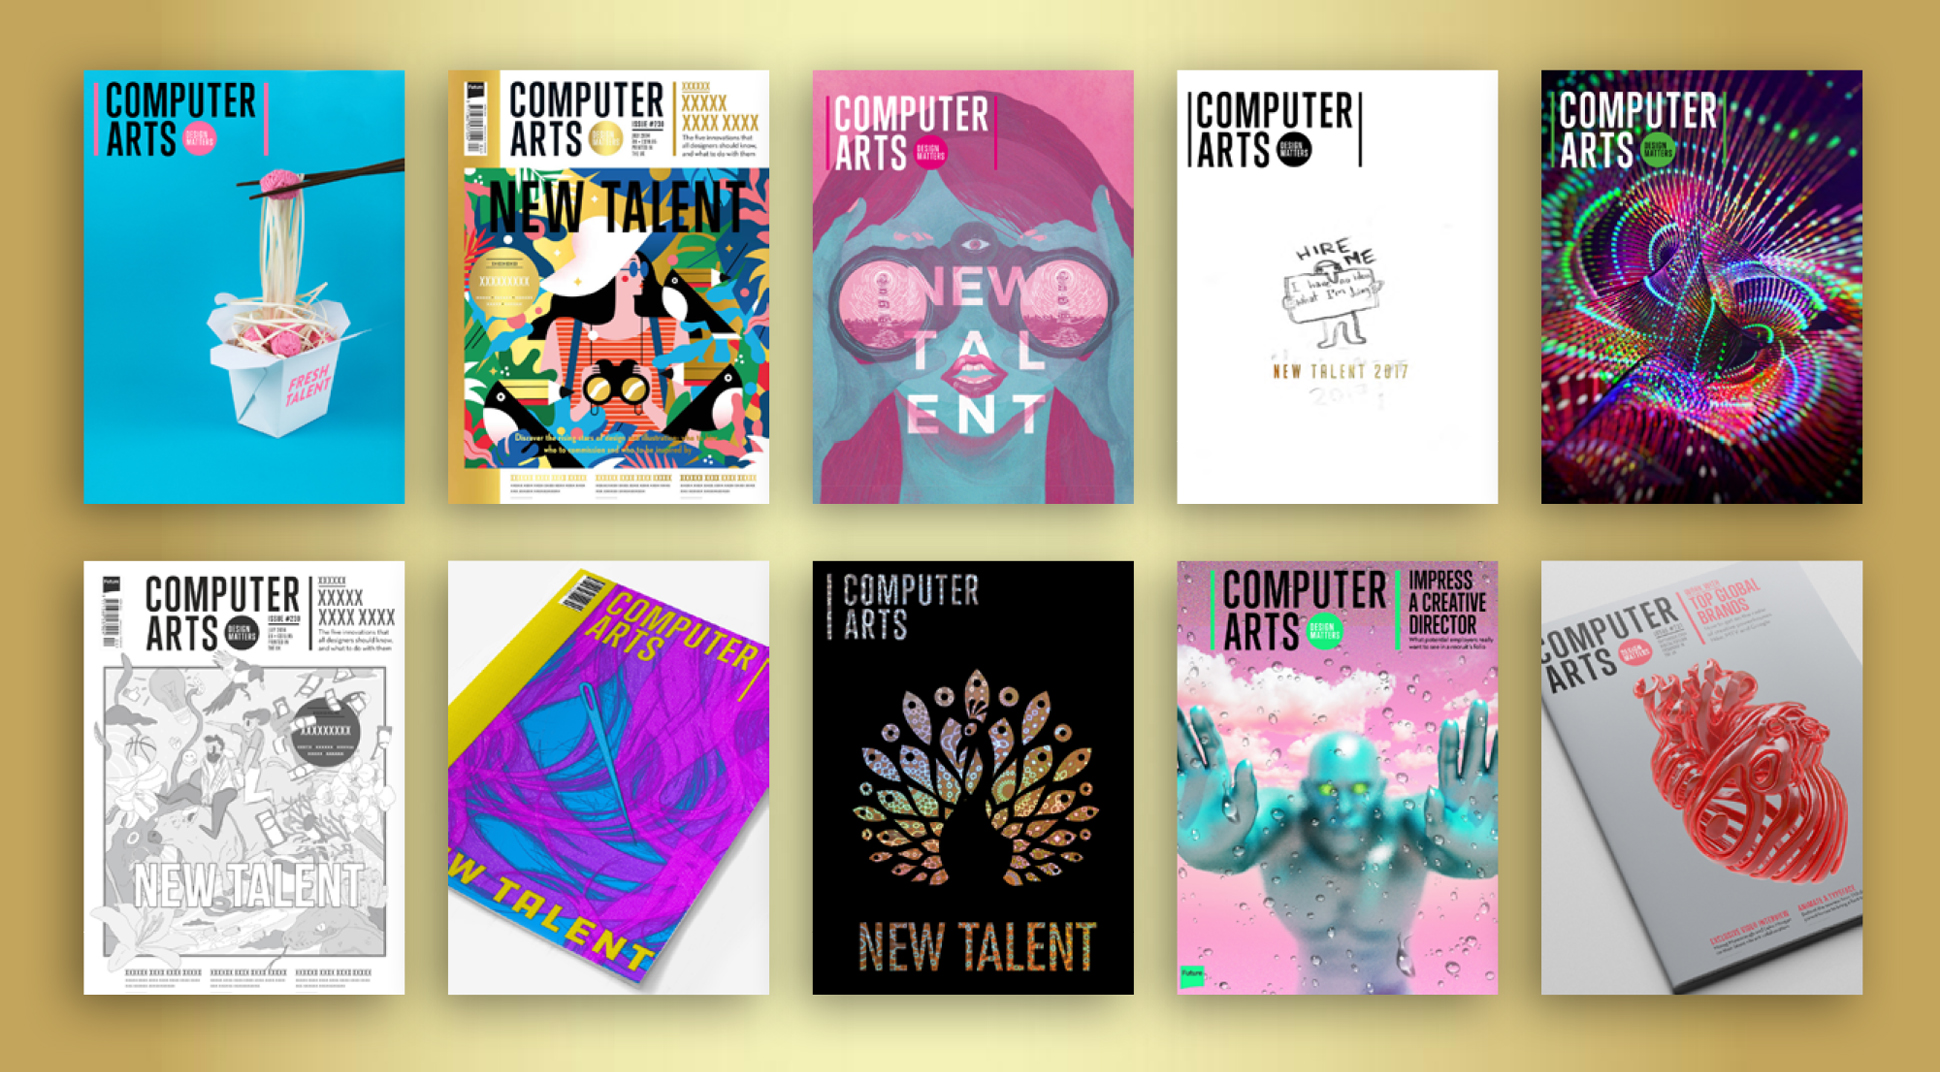 Computer Arts cover design contest 2017: Top 10 revealed!